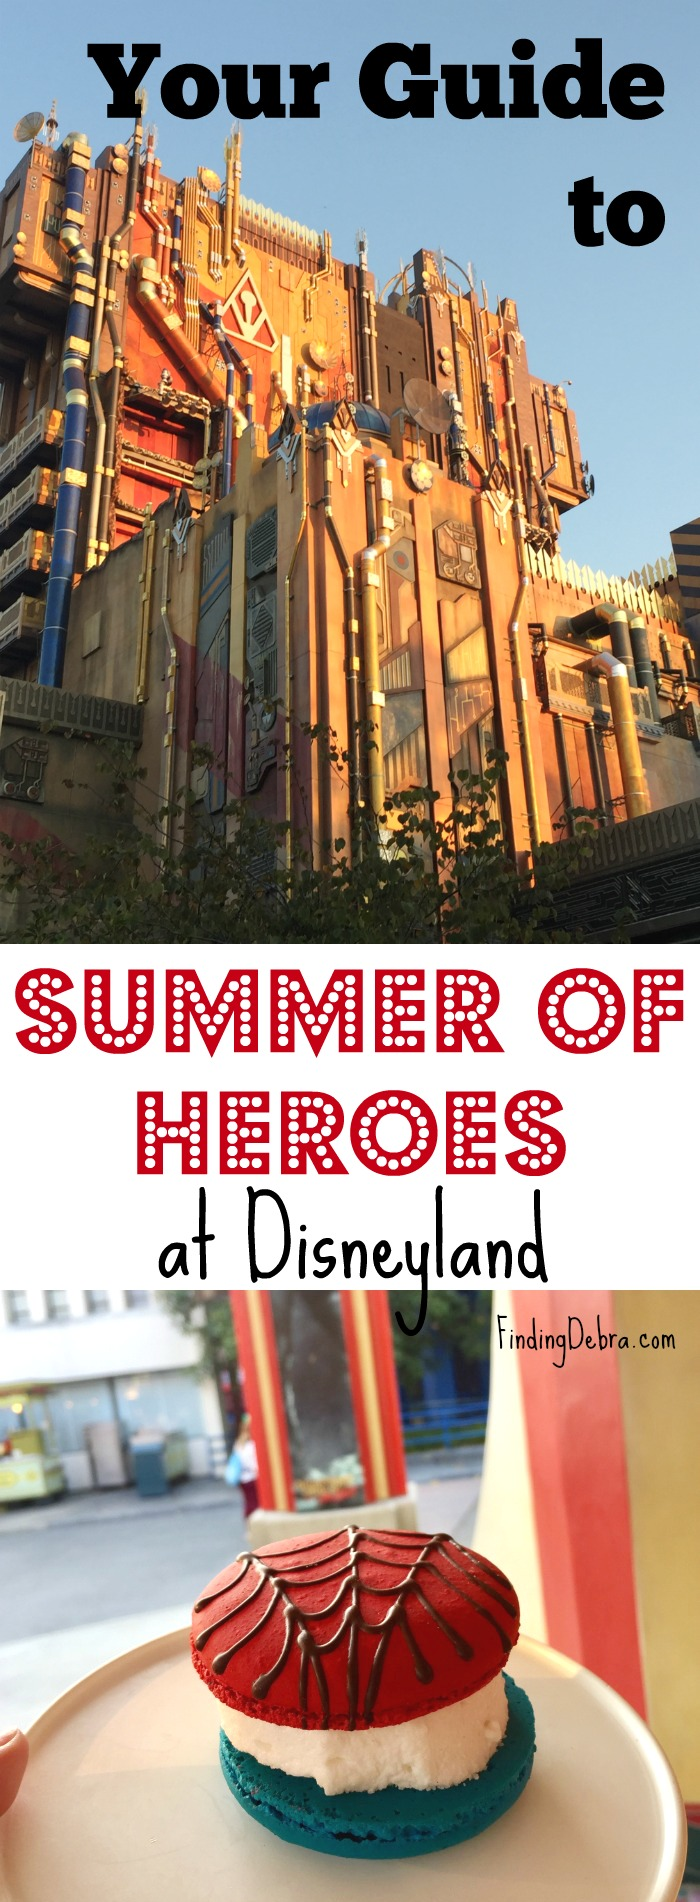 Guide to Summer of Heroes at Disneyland